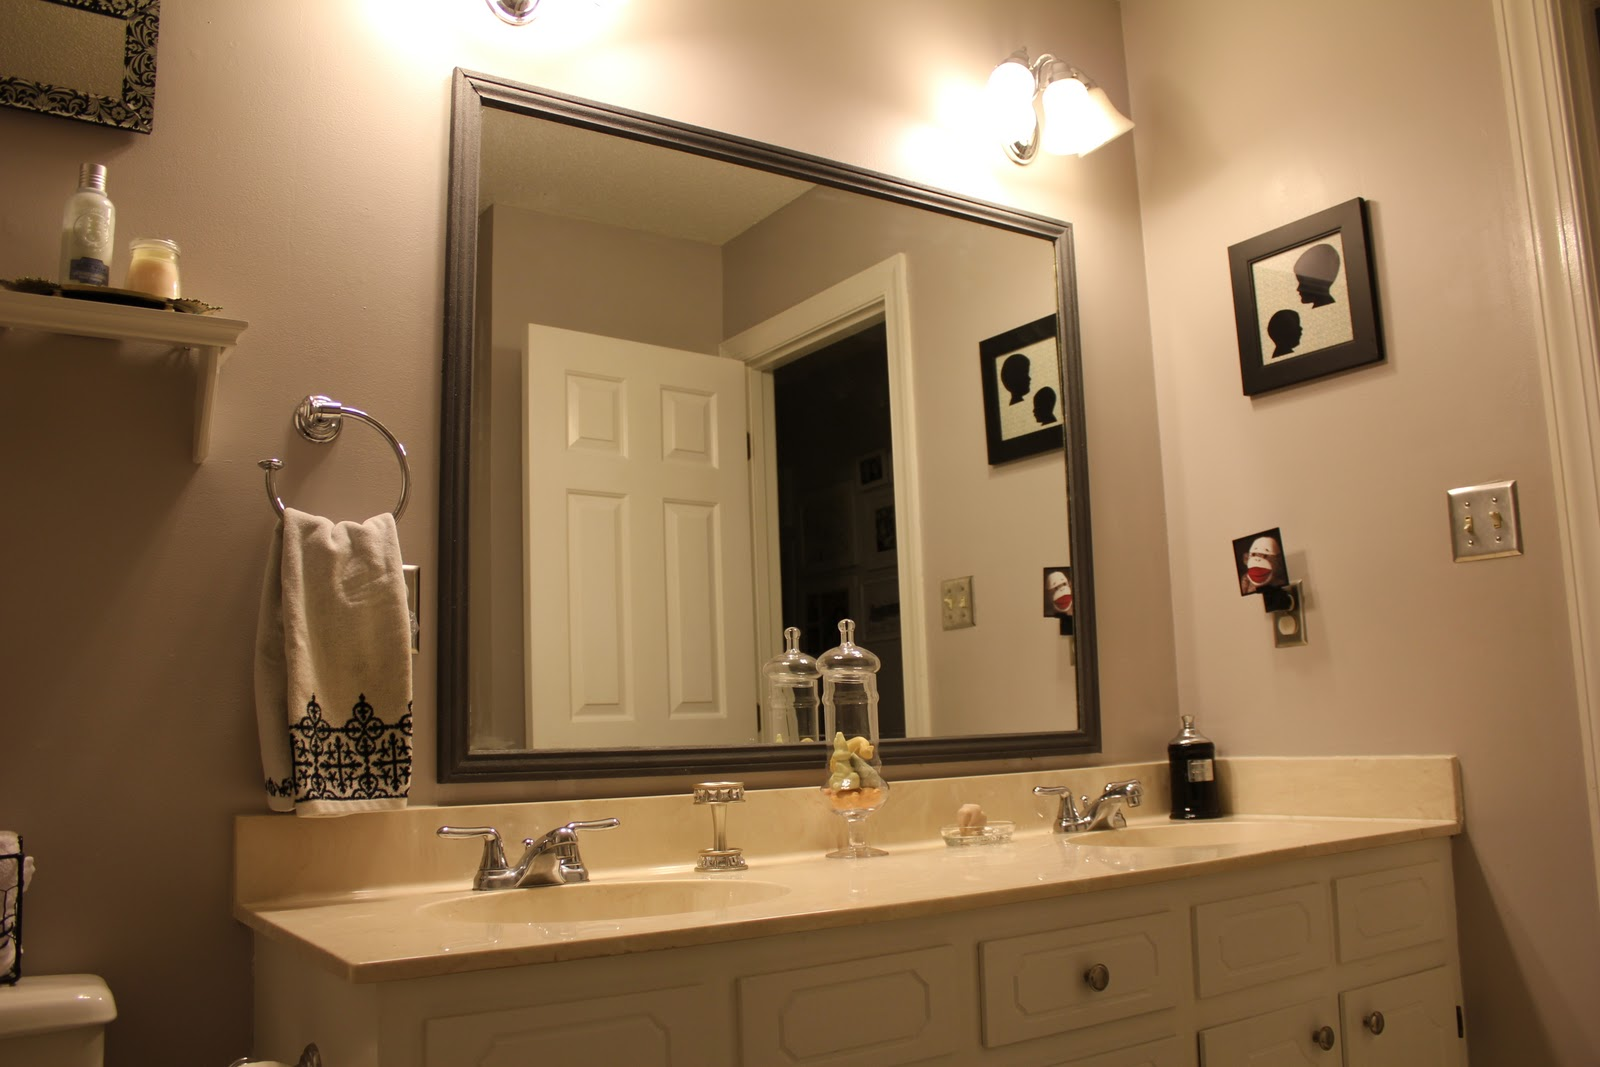 Framed Bathroom Mirrors 2 Or 1